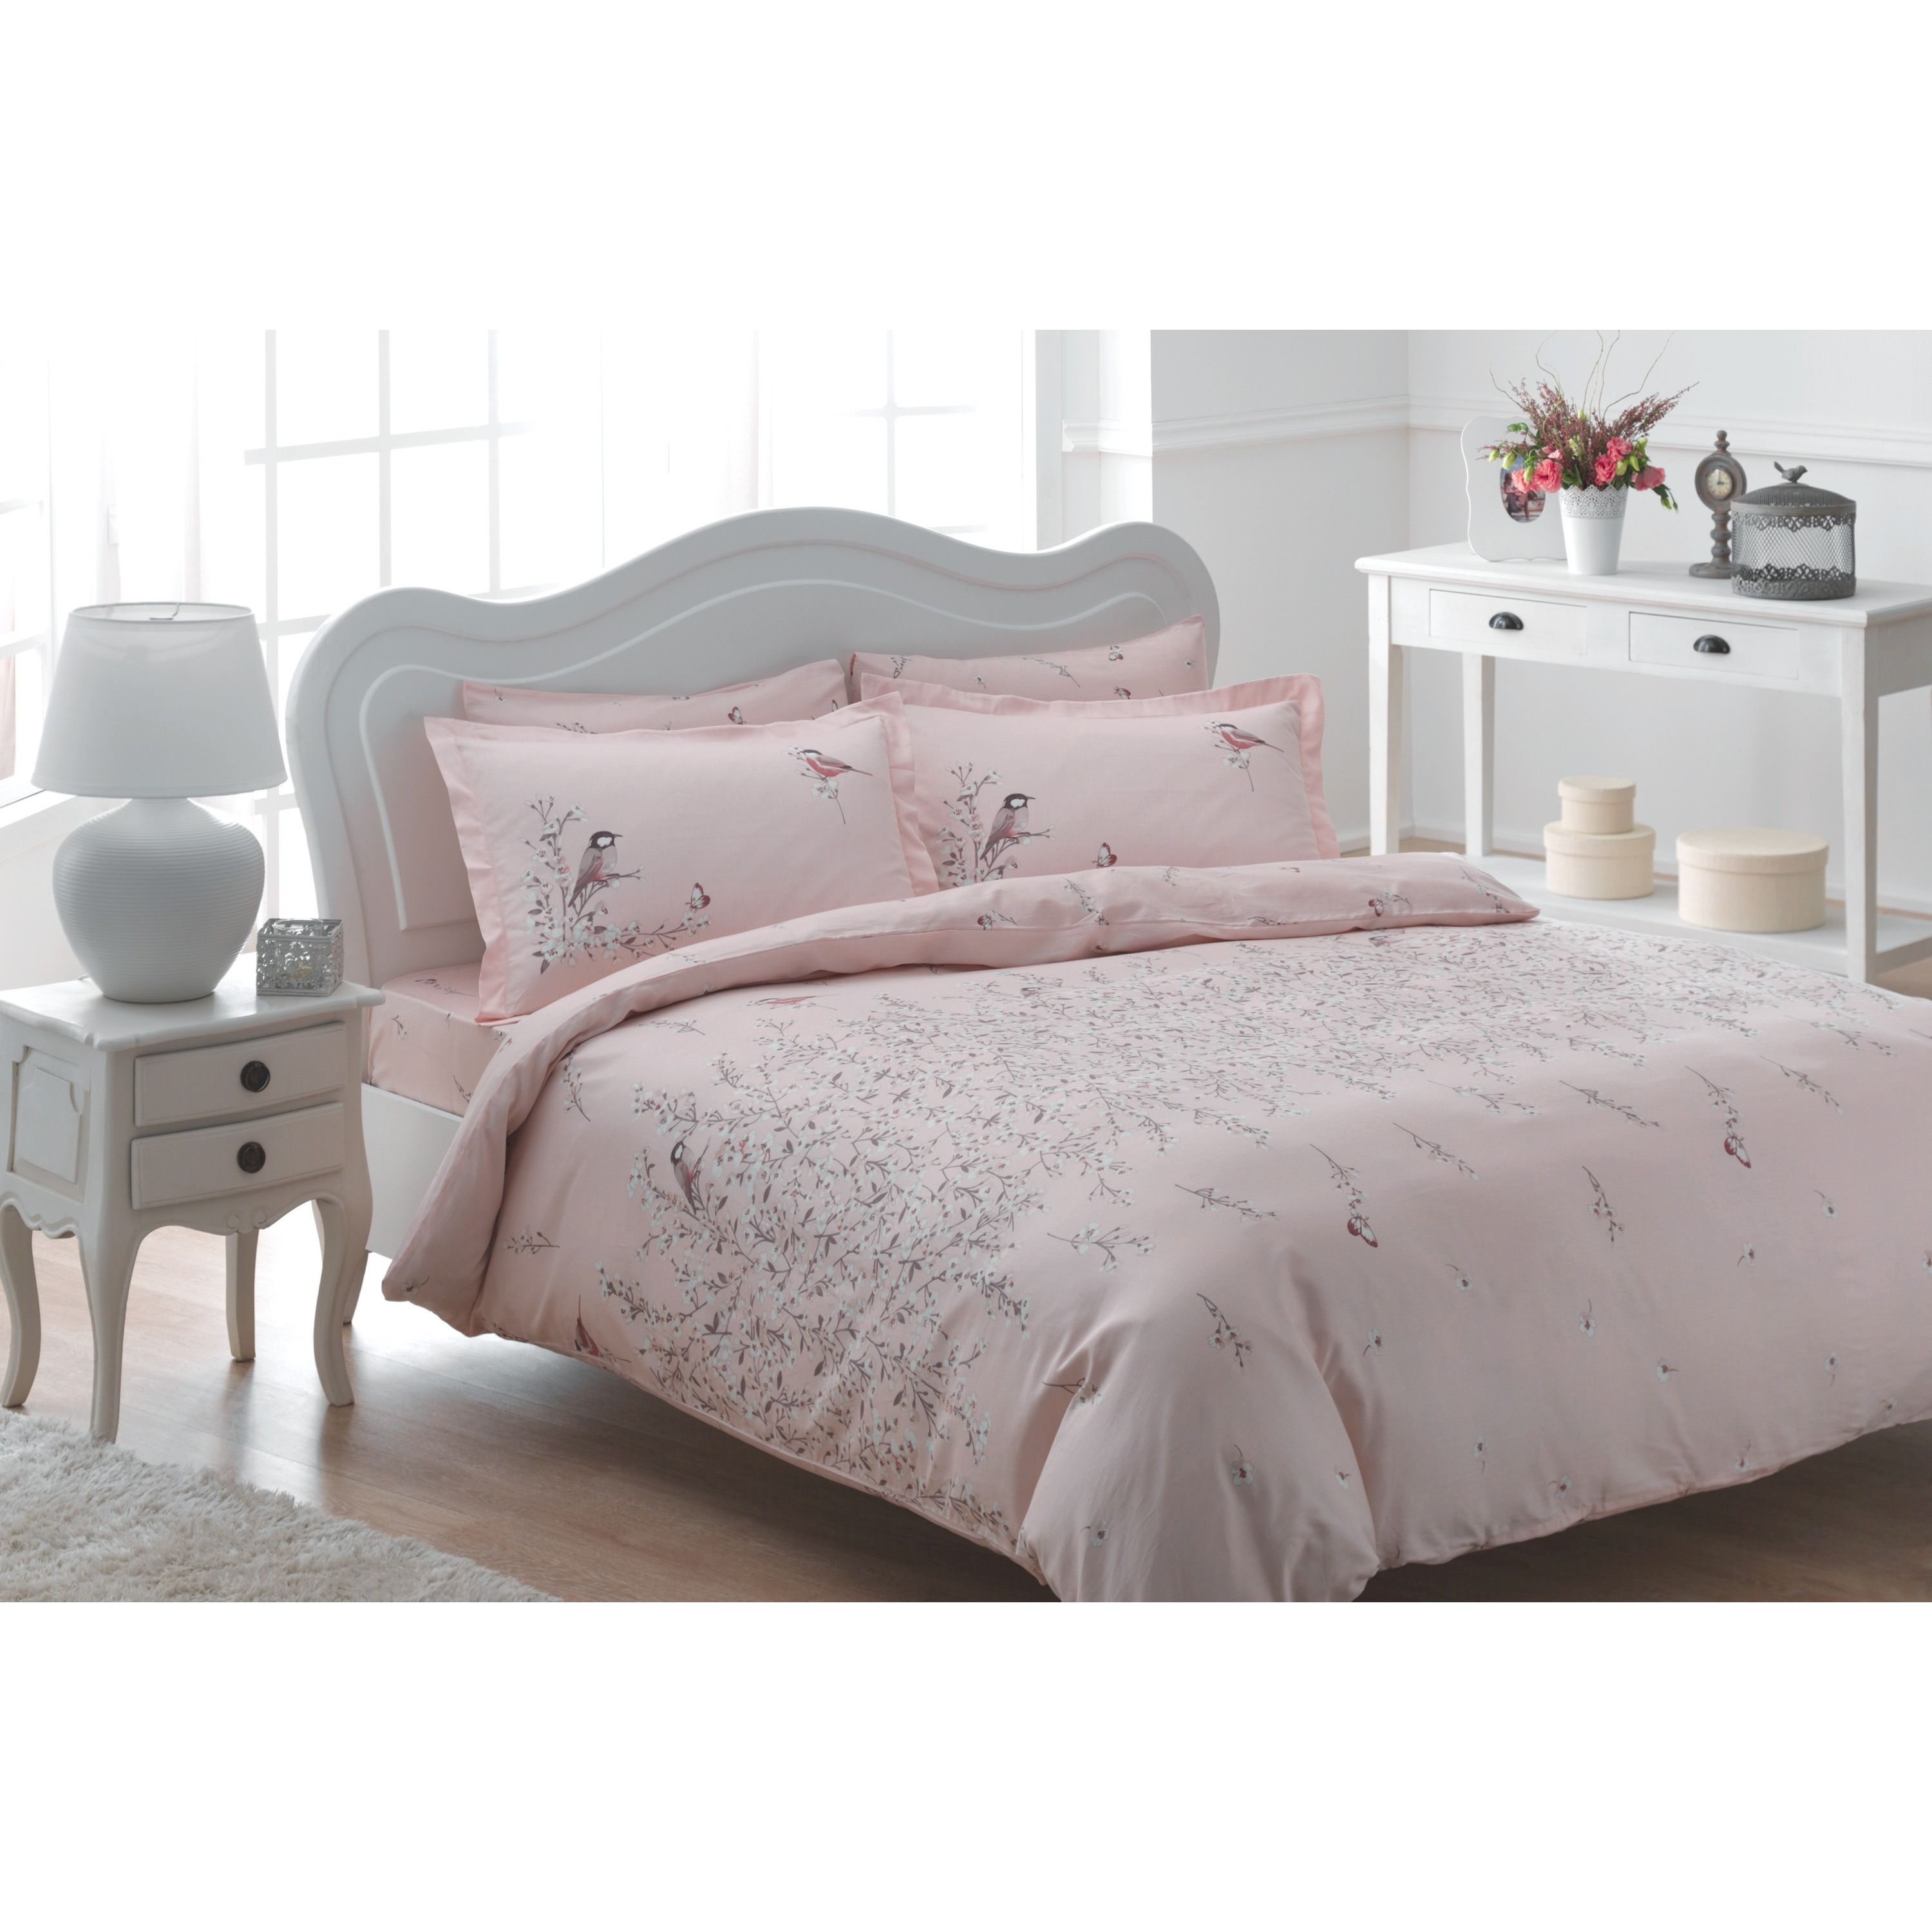 Brielle Rayon From Bamboo Green Twill Eden 3 Piece Duvet Cover Set With Giftable Box Pink King